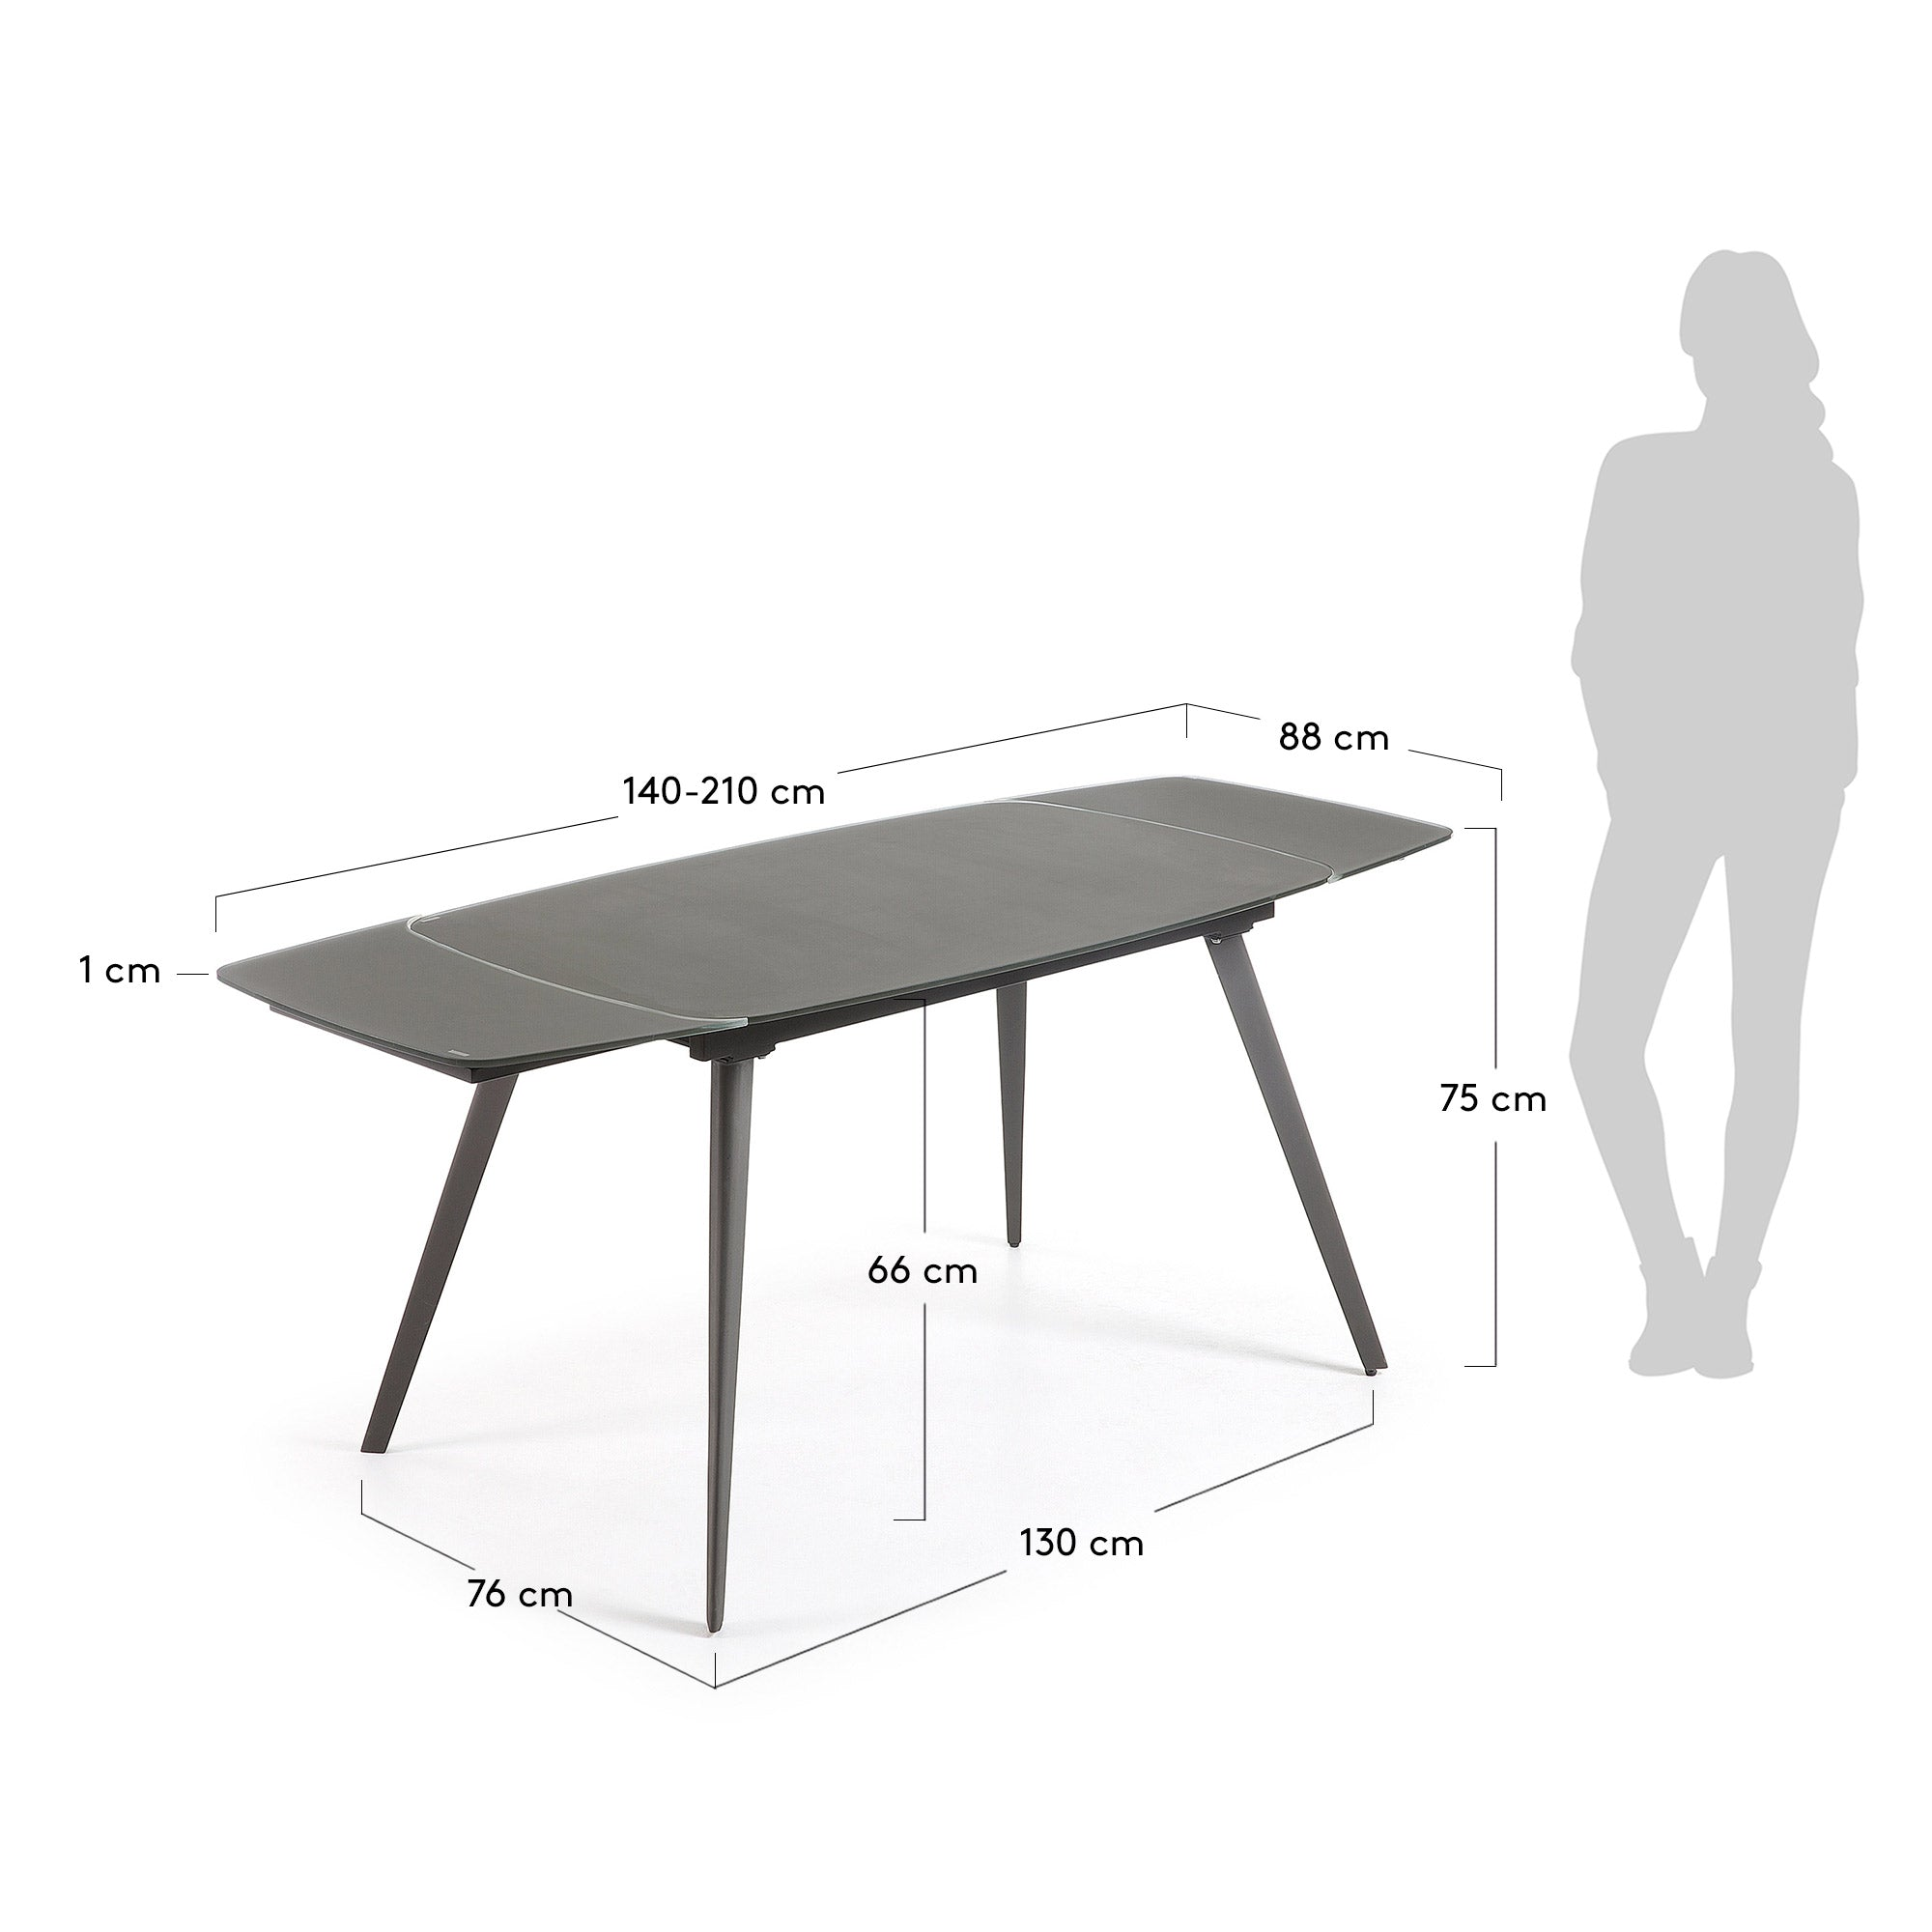 Fraser Glass extension Table 140-210 cm- Anthracite, Table - Home-Buy Interiors